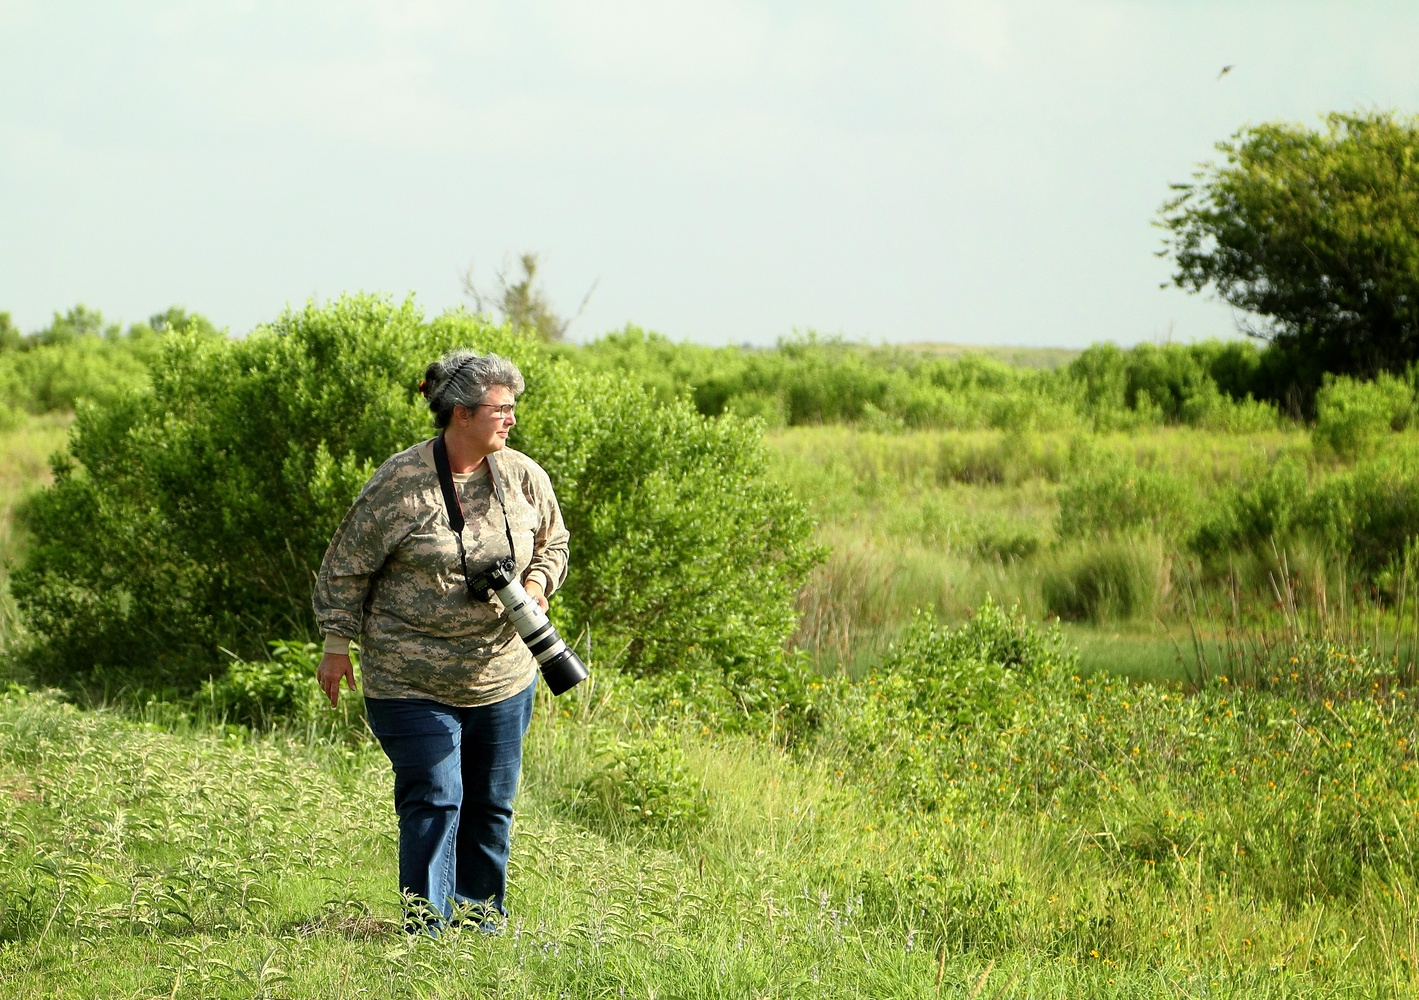 Nature photographer in the wild by Dudley Didereaux